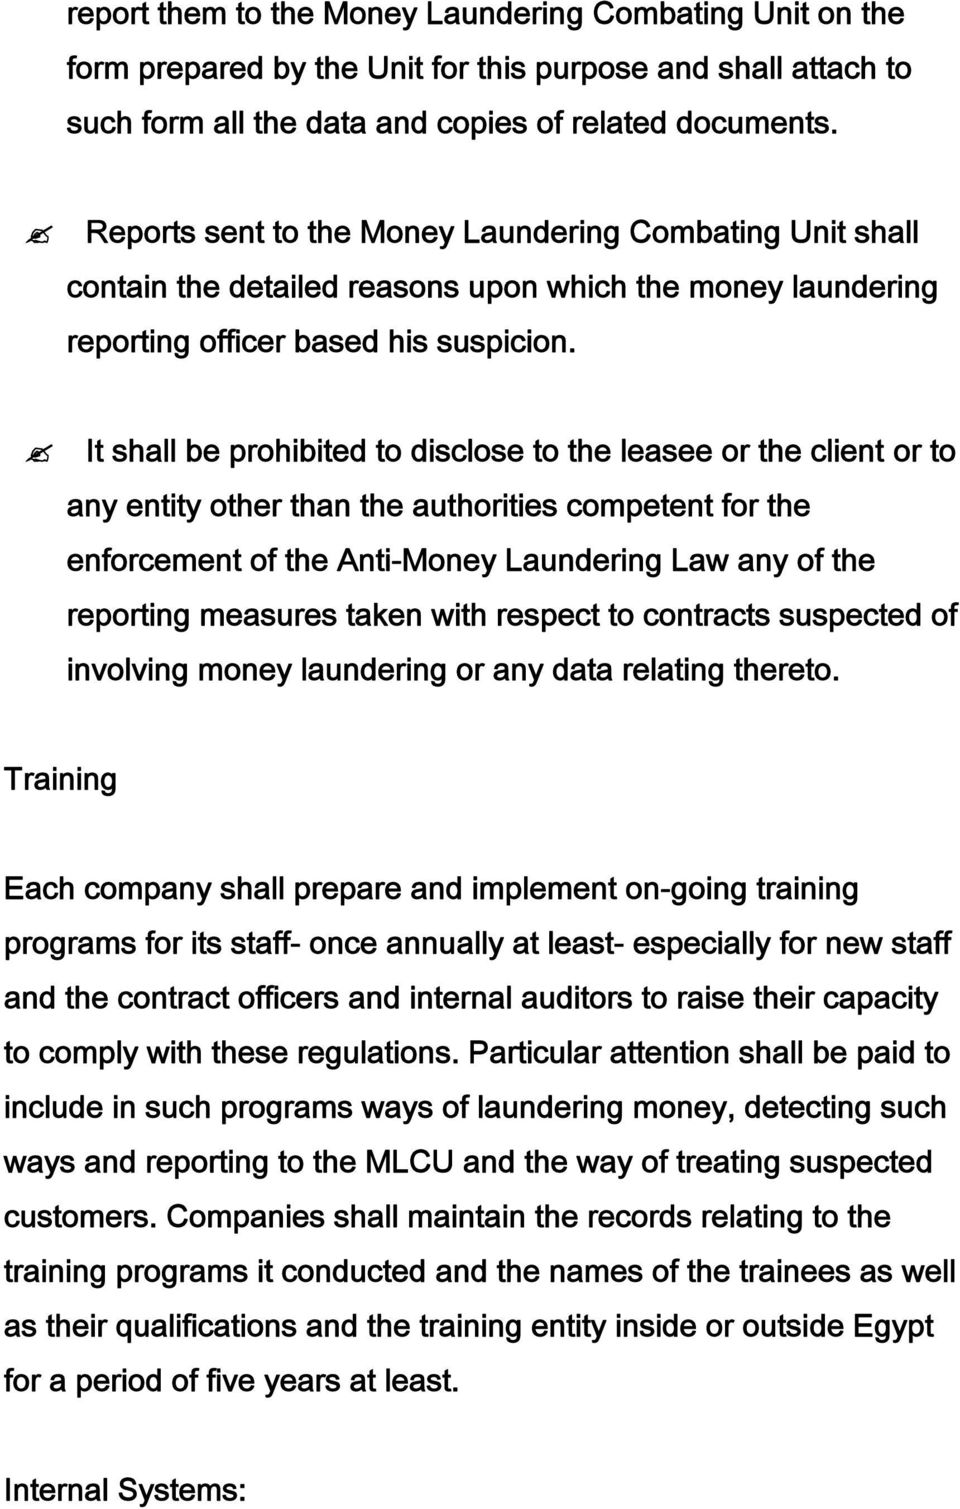 It shall be prohibited to disclose to the leasee or the client or to any entity other than the authorities competent for the enforcement of the Anti-Money Laundering Law any of the reporting measures